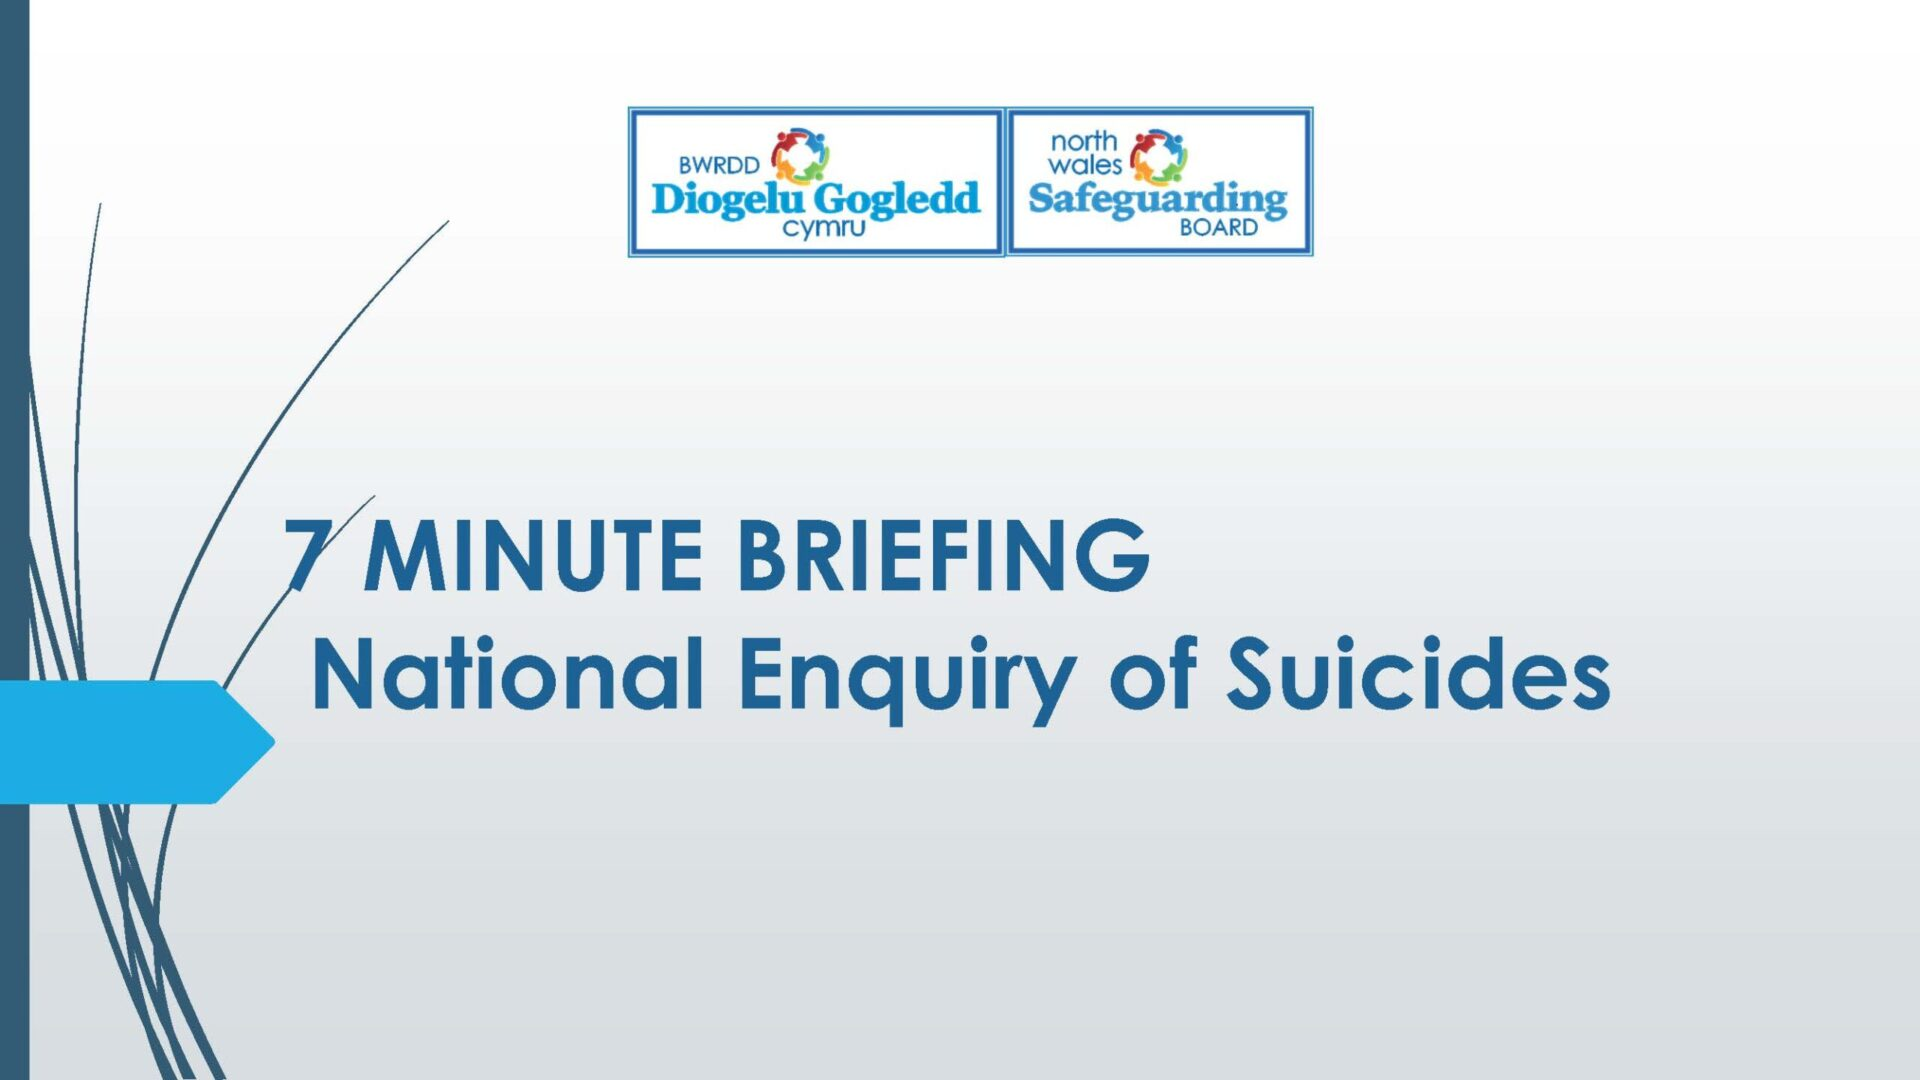 7 Minute Briefing - National Enquiry of Suicides